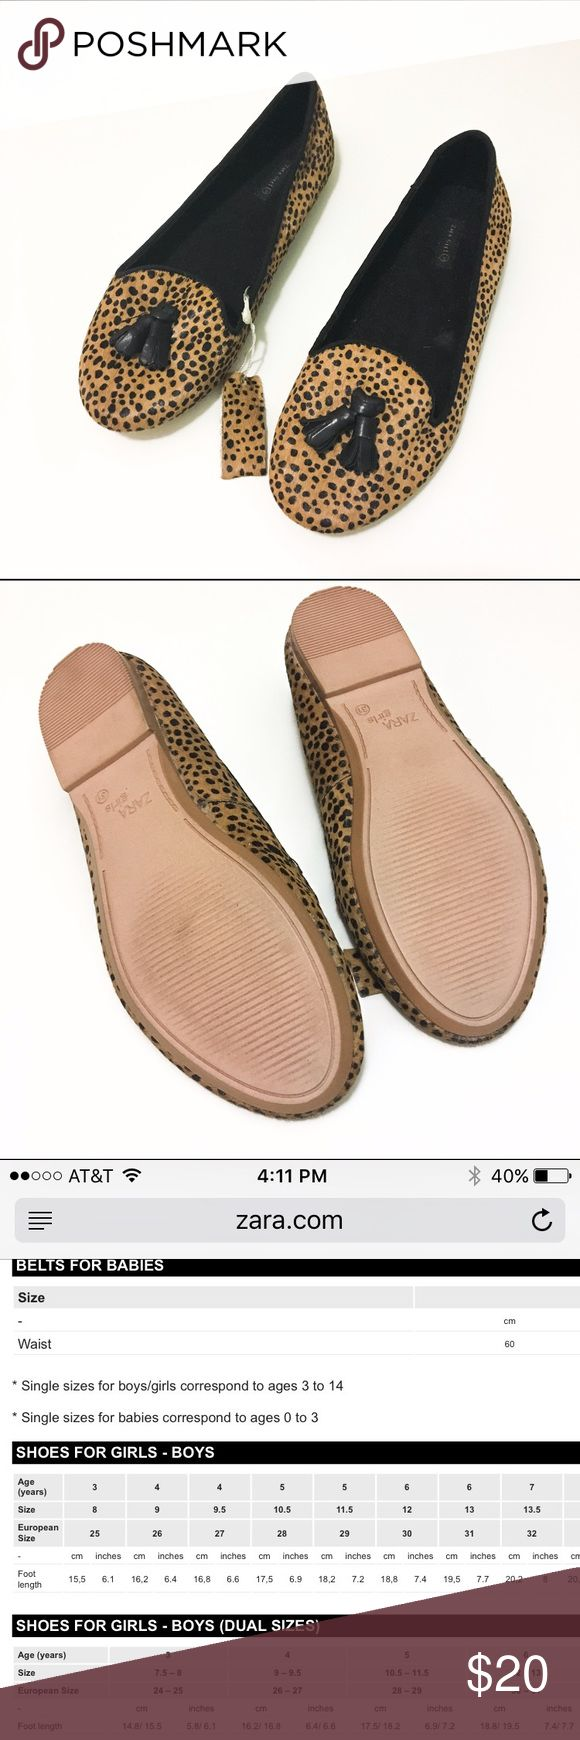 Zara girls leopard flats Brand new. Says size 31 which is a size 13 in US size as per the Zara website(see last picture). These are super cute and stylish with faux cheetah hair and a cute tassel adorn. Zara Shoes Dress Shoes